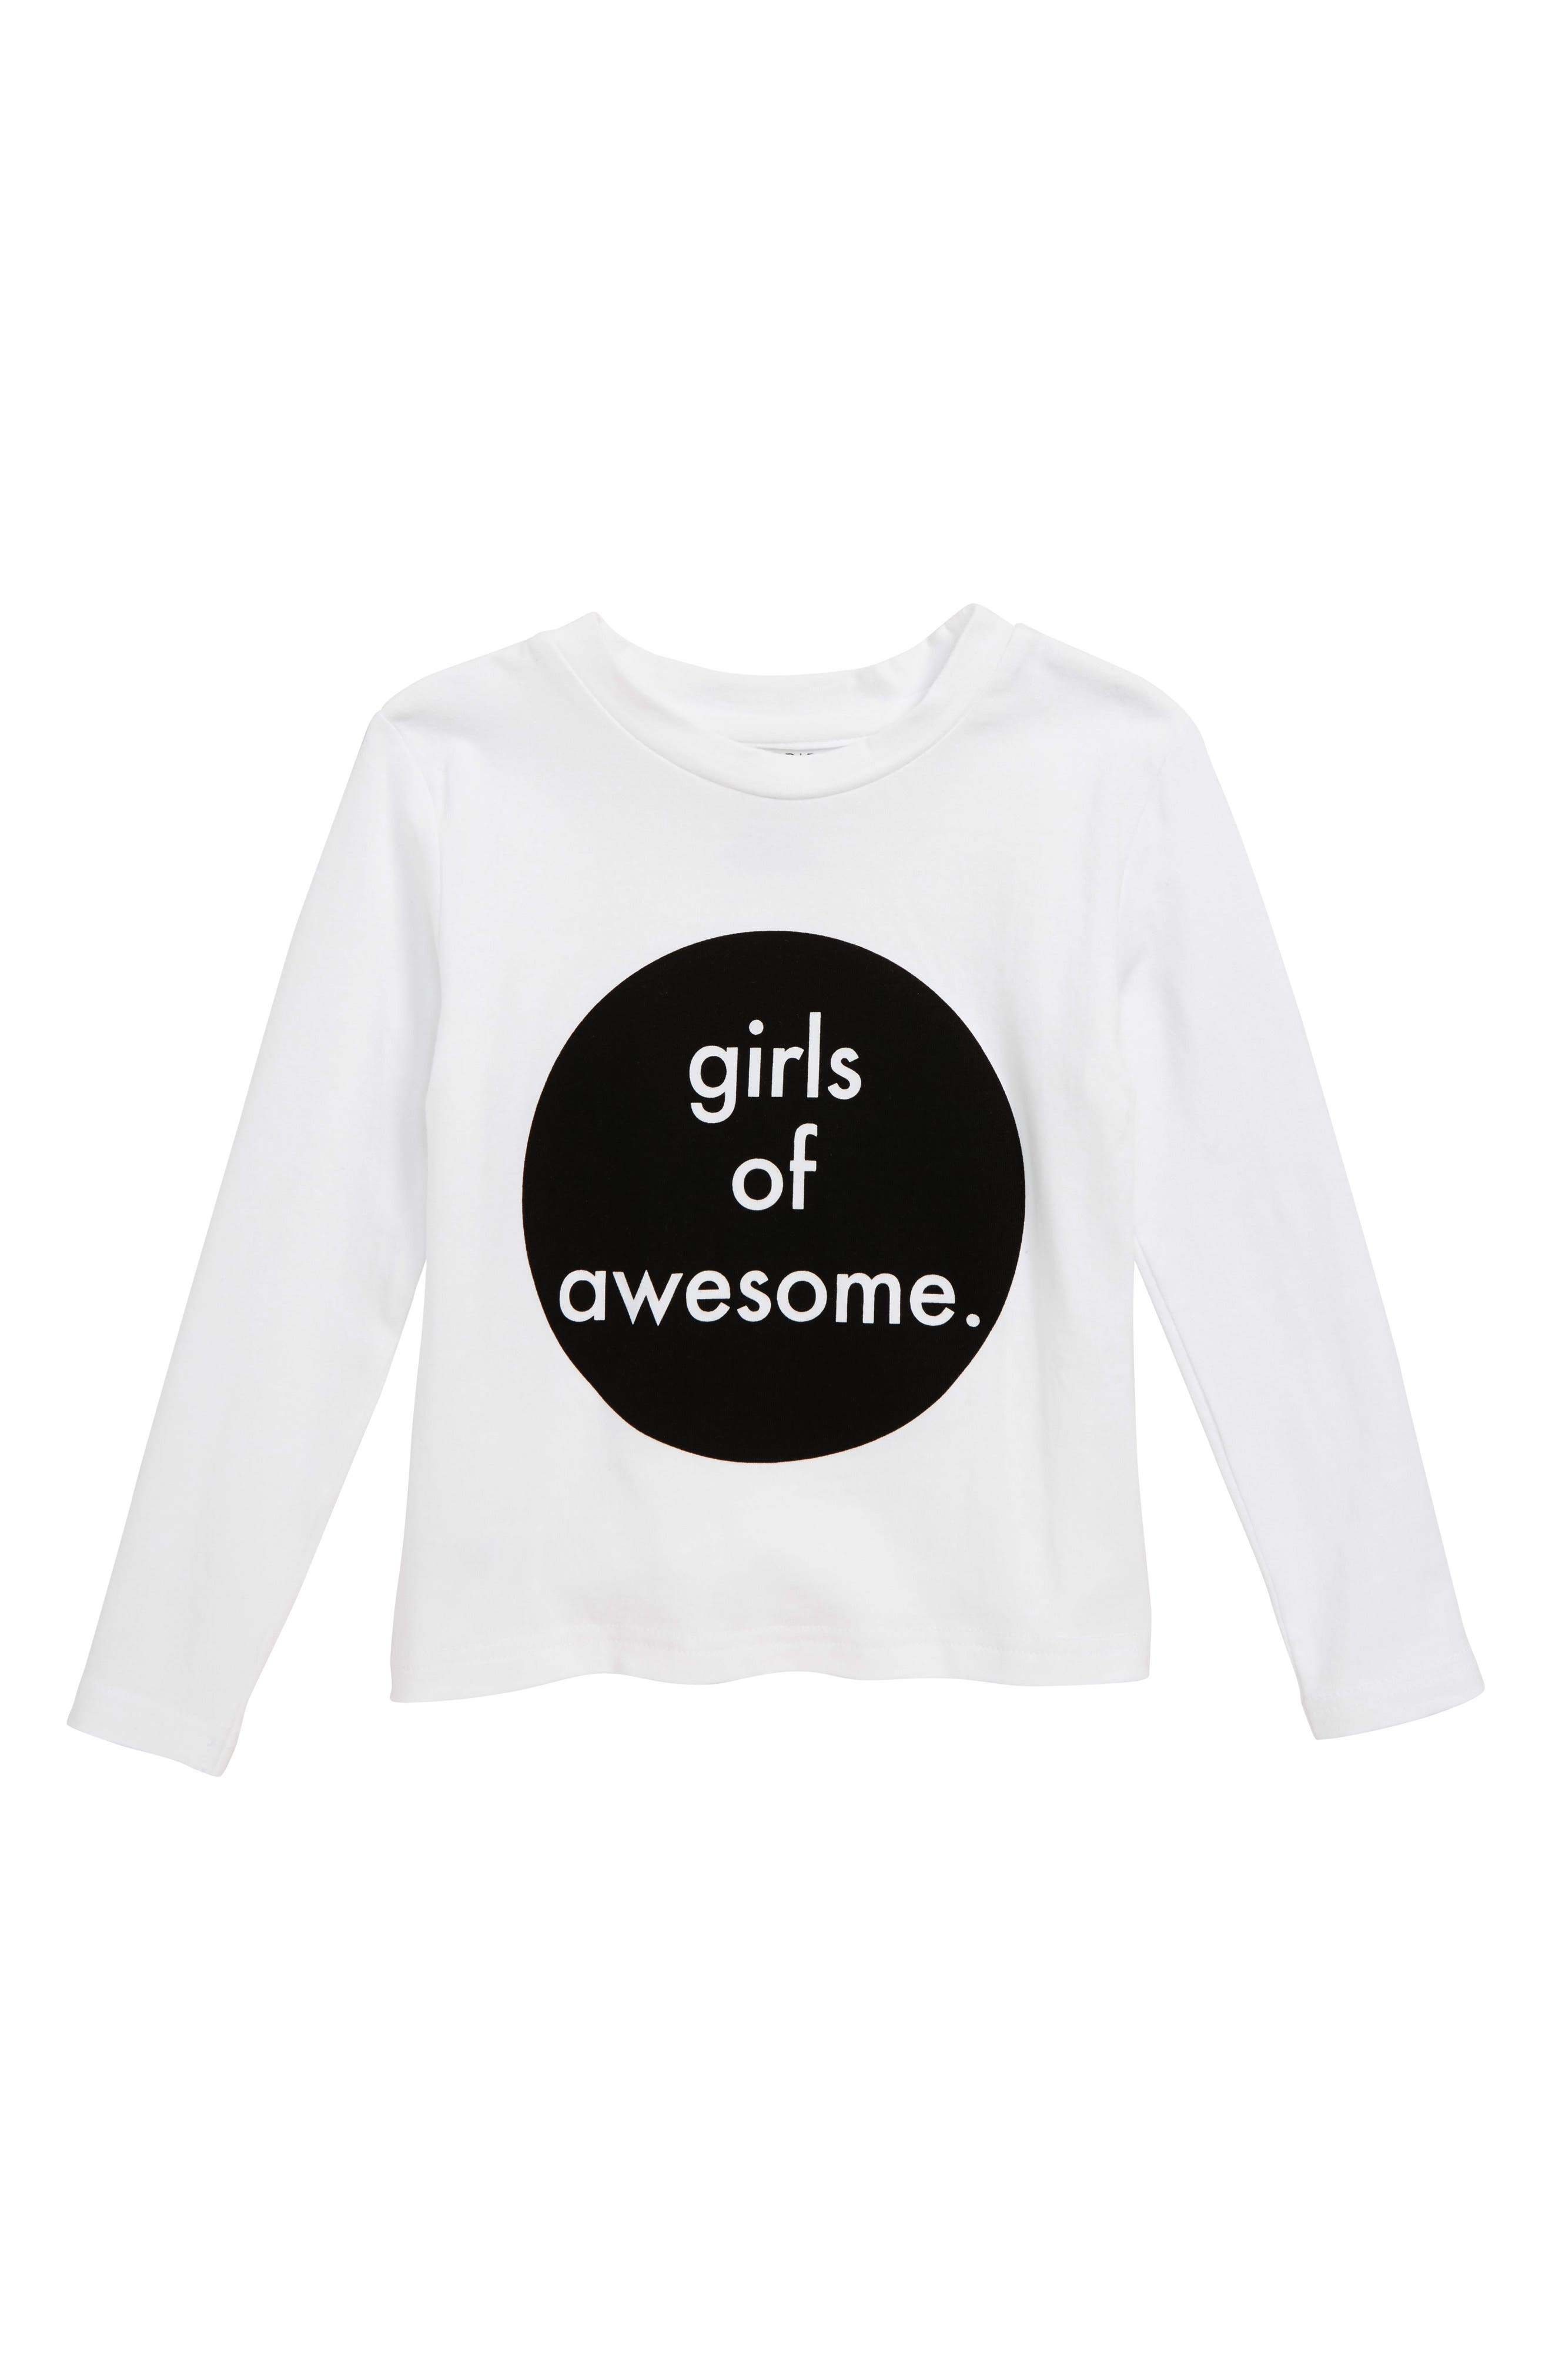 Awesome Girls Tee,                         Main,                         color, WHITE / BLACK